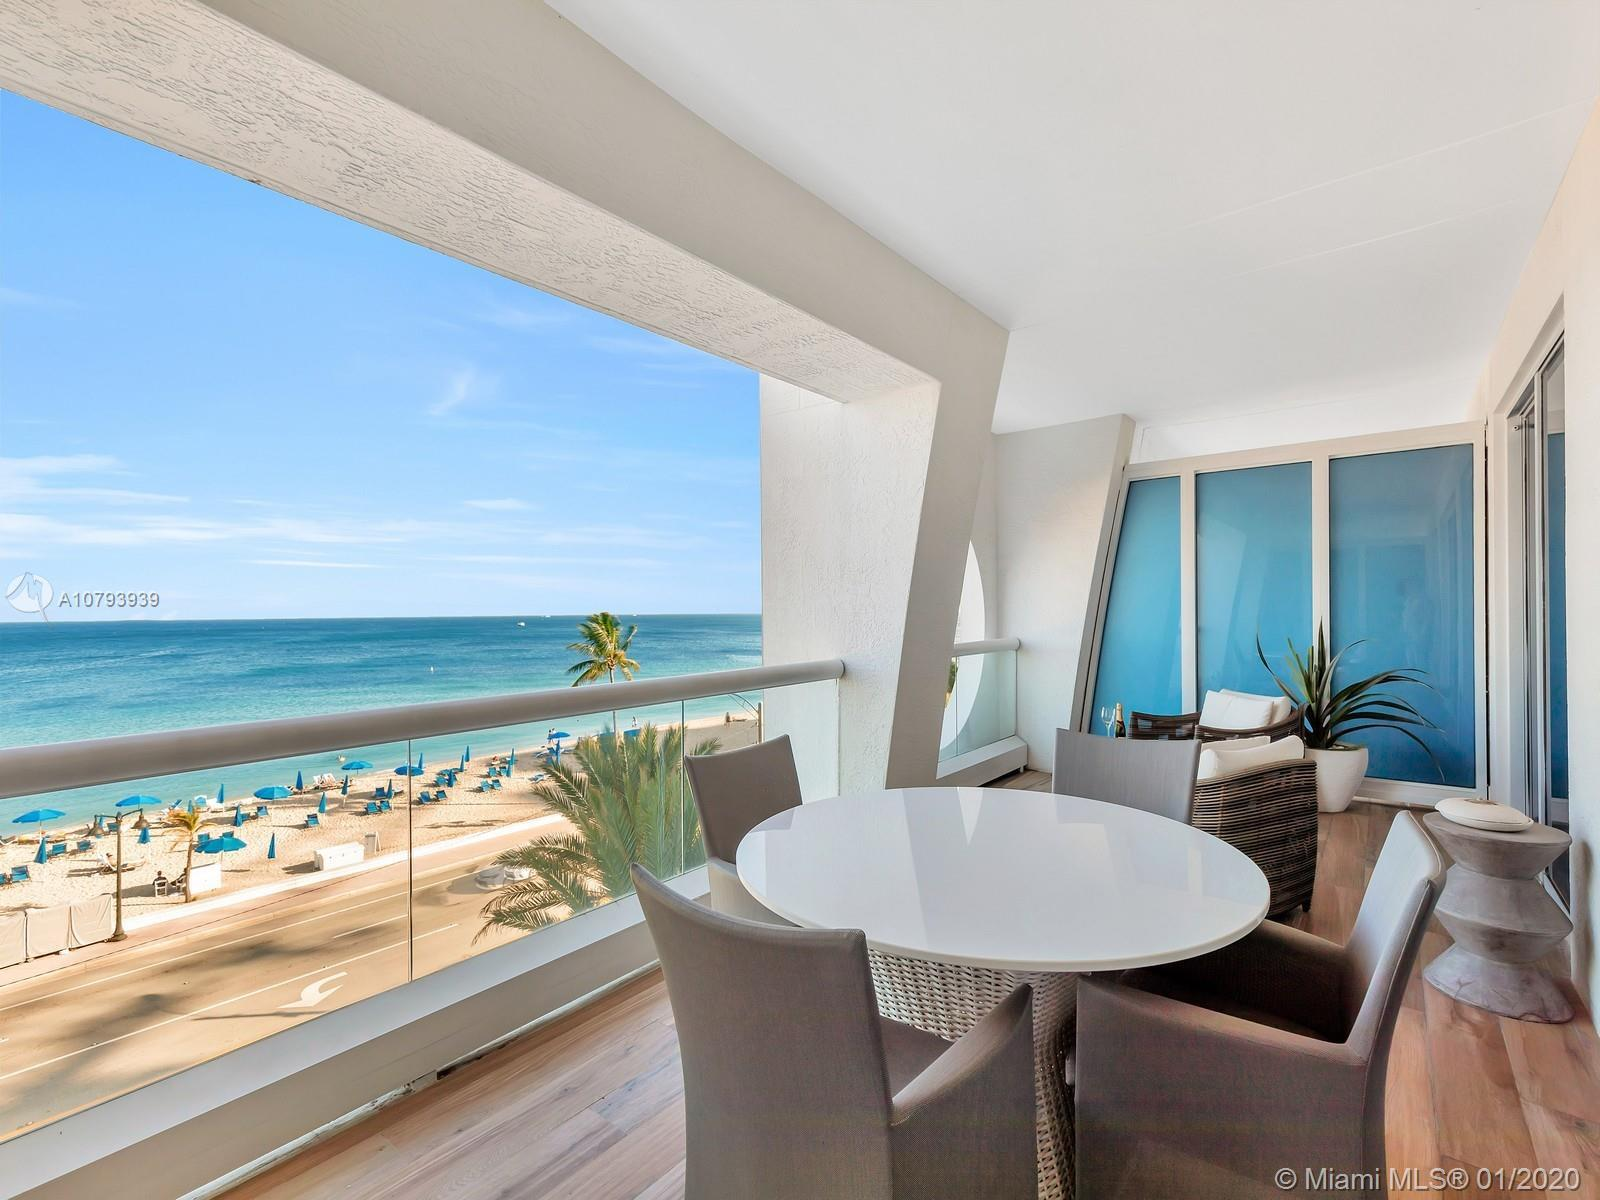 Welcome to The Ocean Resort Residences   Conrad Ft. Lauderdale where 23 miles of white sand beaches